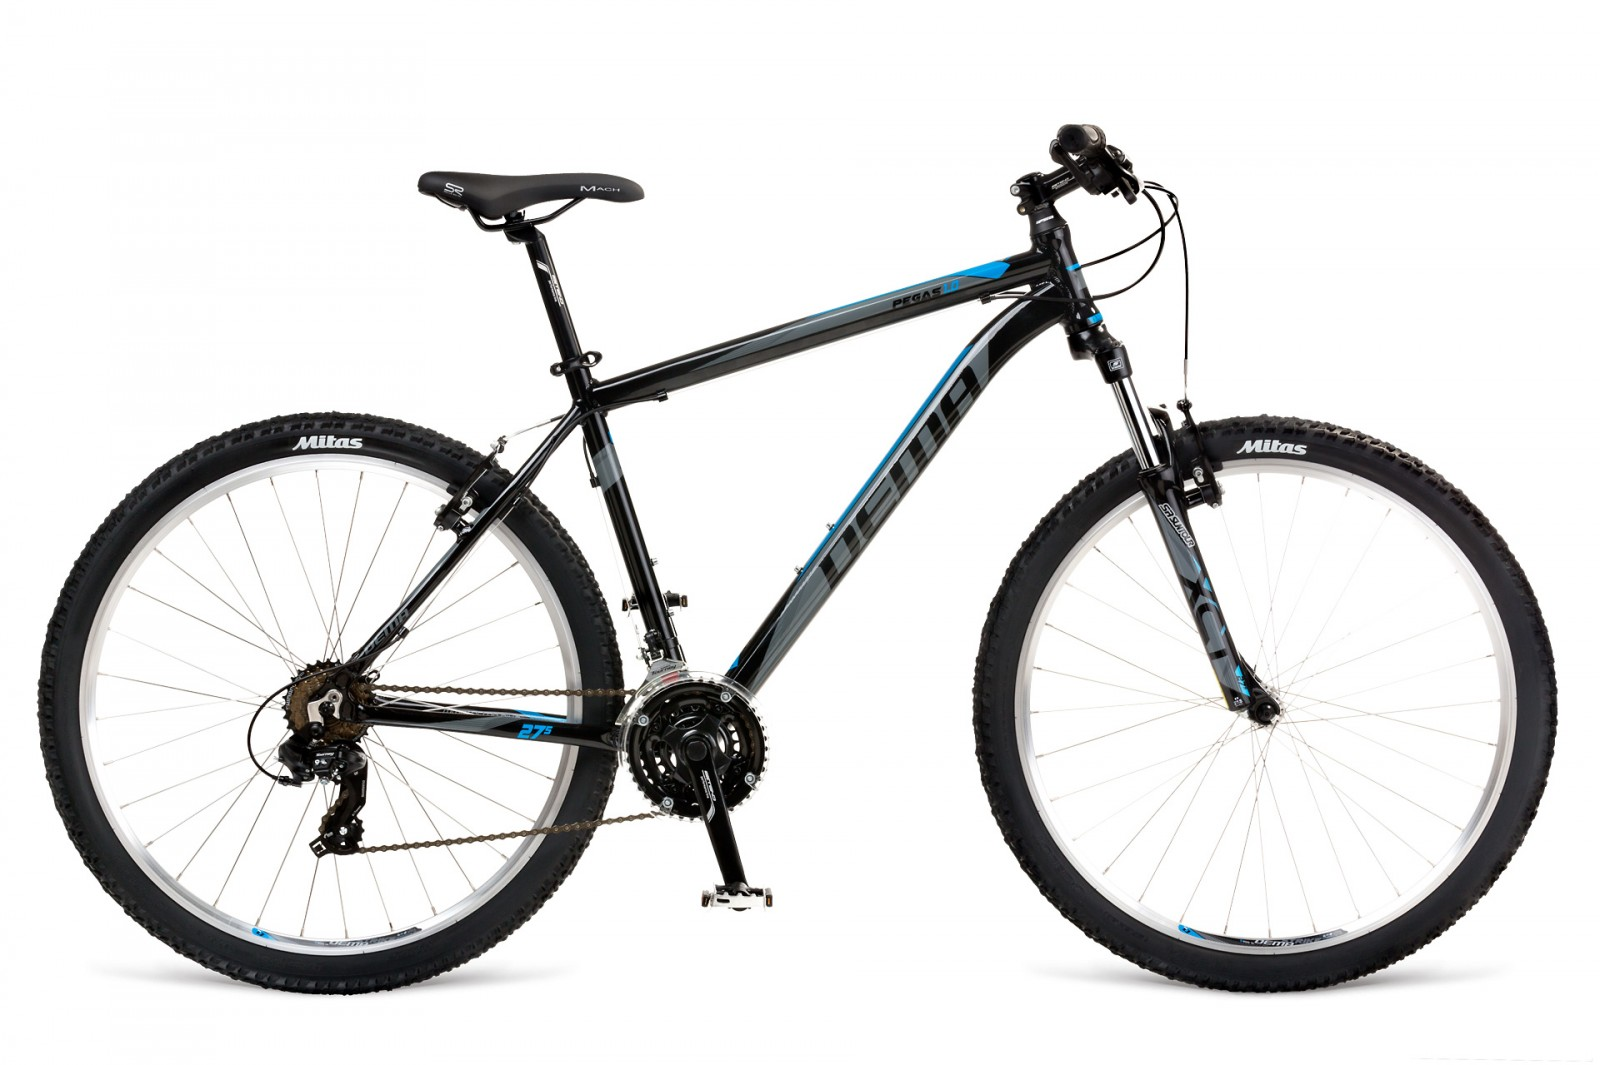 Dema PEGAS 1.0 black/grey/blue